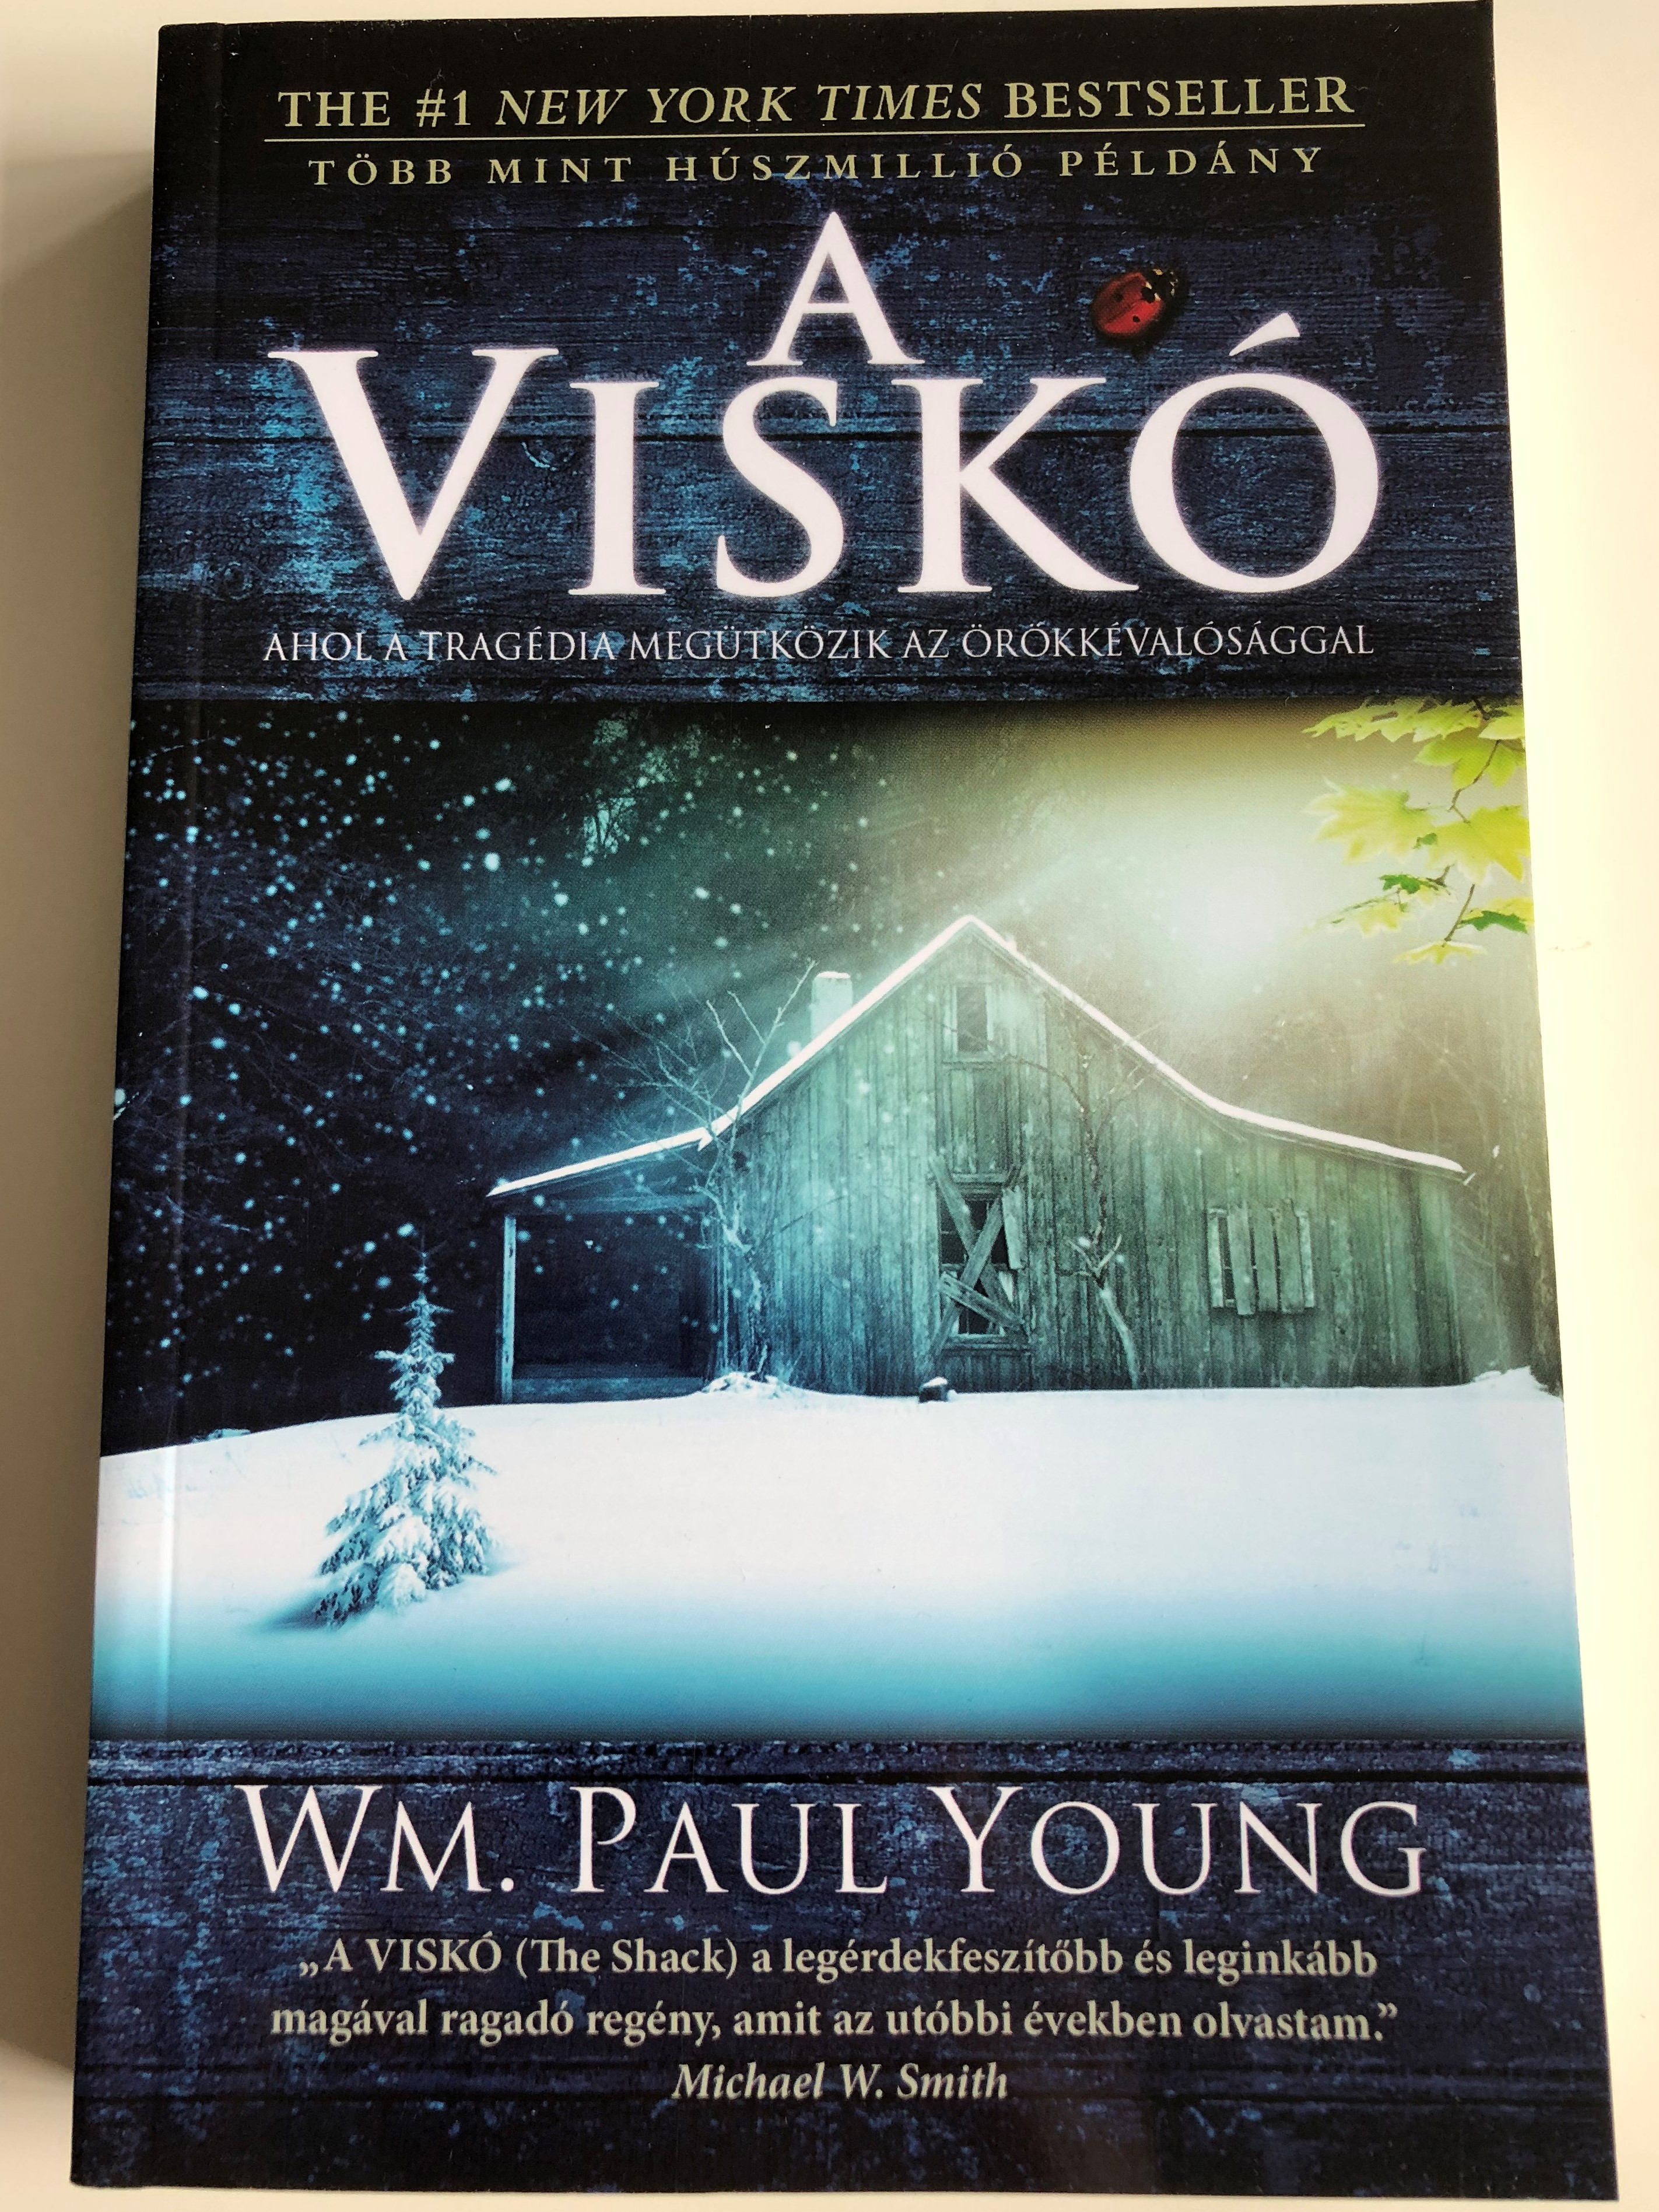 a-visk-ahol-a-trag-dia-meg-tk-zik-az-r-kk-val-s-ggal-by-wm.-paul-young-hungarian-translation-of-the-shack-the-book-wrestles-with-the-timeless-question-where-is-god-in-a-world-so-filled-with-unspeakable-pain-1-.jpg